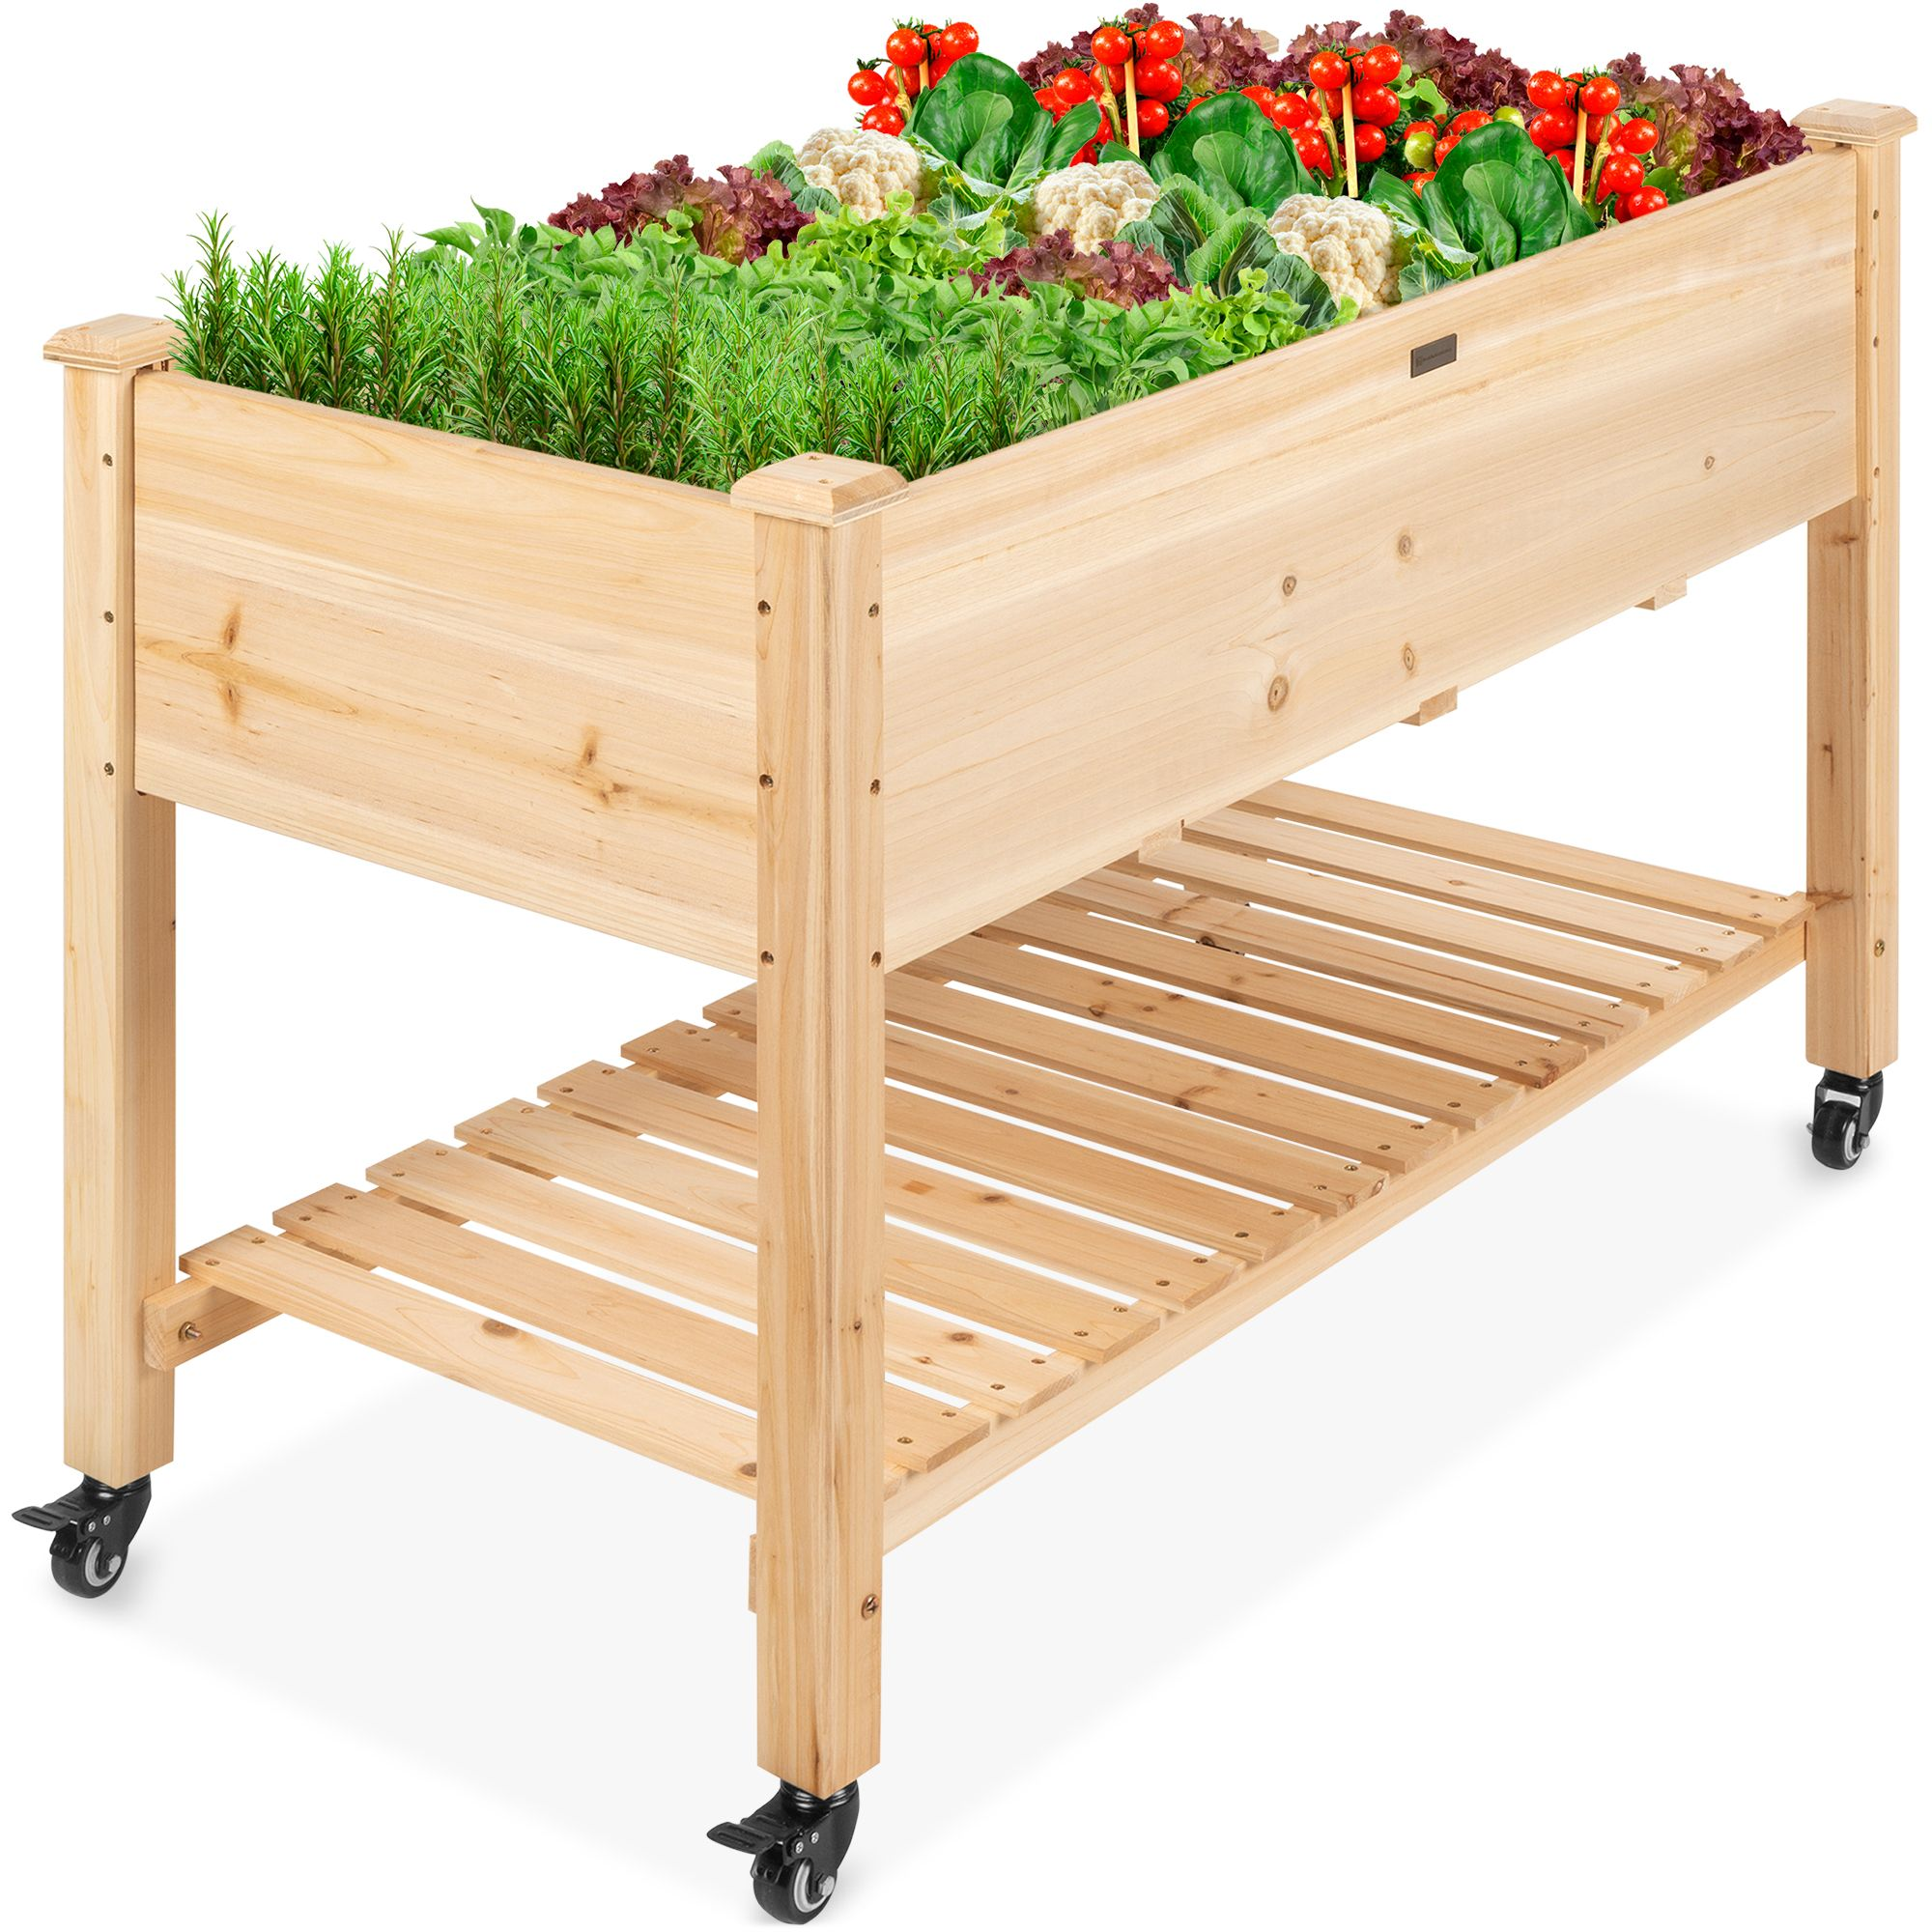 Best Choice Products Raised Garden Bed 48x24x32in Mobile Elevated Wood Planter W Lockable Wheels Storage Shelf Liner Walmart Com In 2020 Raised Garden Beds Diy Raised Garden Beds Raised Garden Beds